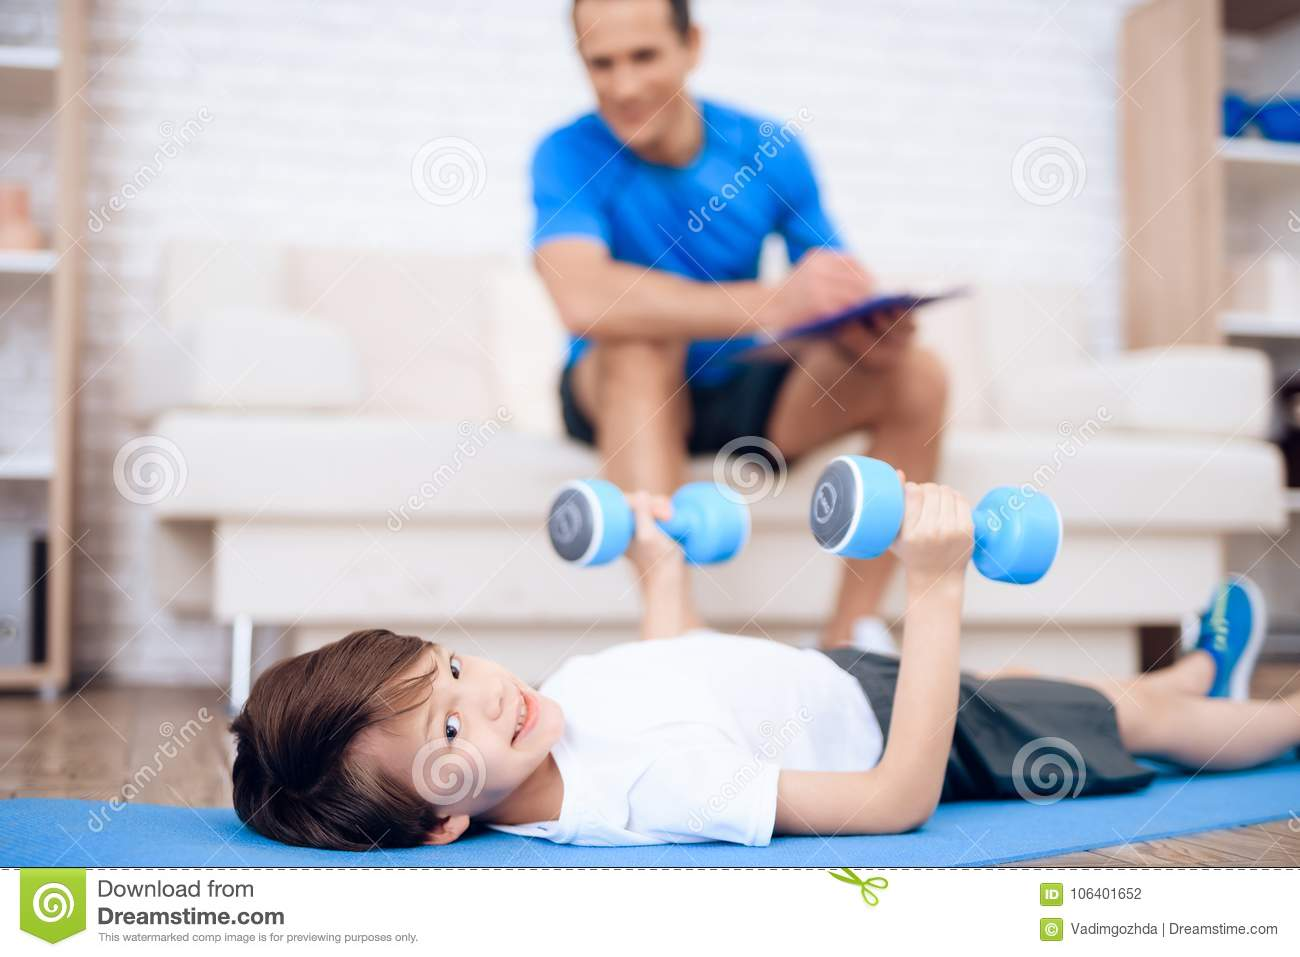 A Boy Is Doing Exercises With Dumbbells On The Floor  Stock Photo